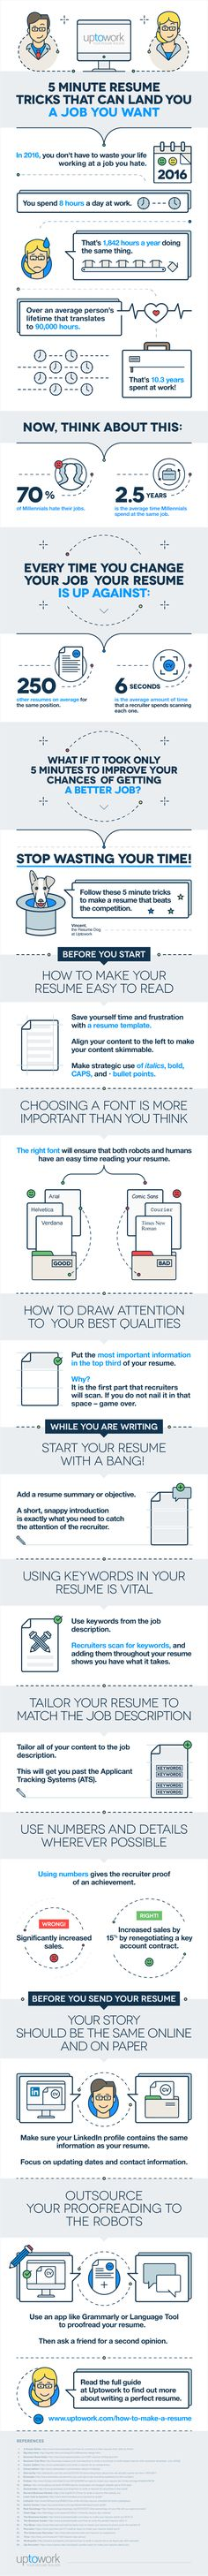 7 Tips On How To Write A Resume That Grabs Recruitersu0027 Attention  [Infographic  Work Resume